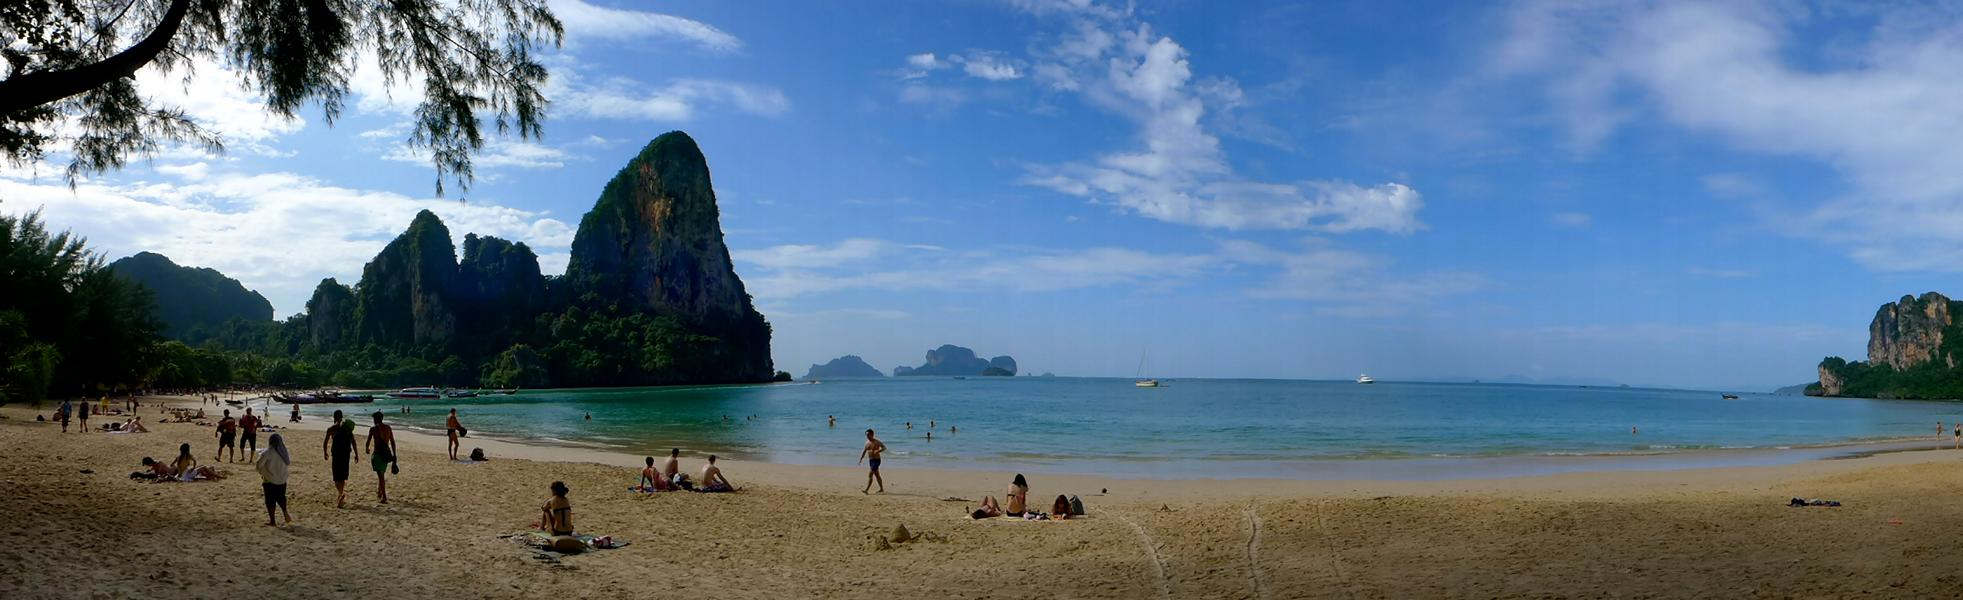 Krabi: Railay Beach und Tonsai Beach